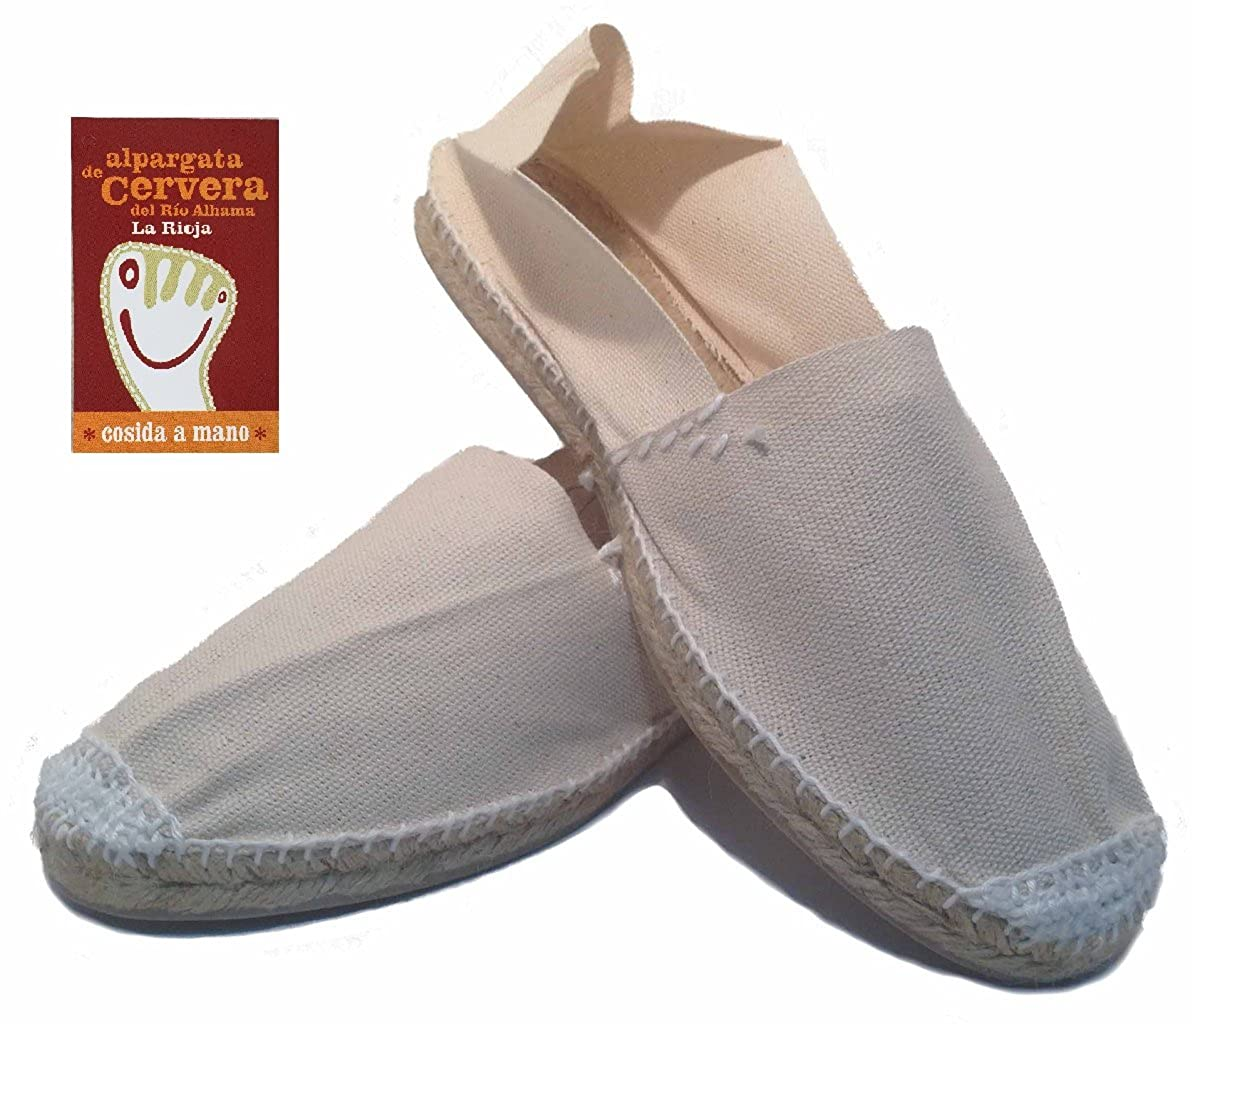 Amazon.com | Espadrilles Alpargatas Made in Spain Model Classic Flat Hand Sewn Original Cervera del Rio Alhama La Rioja | Shoes